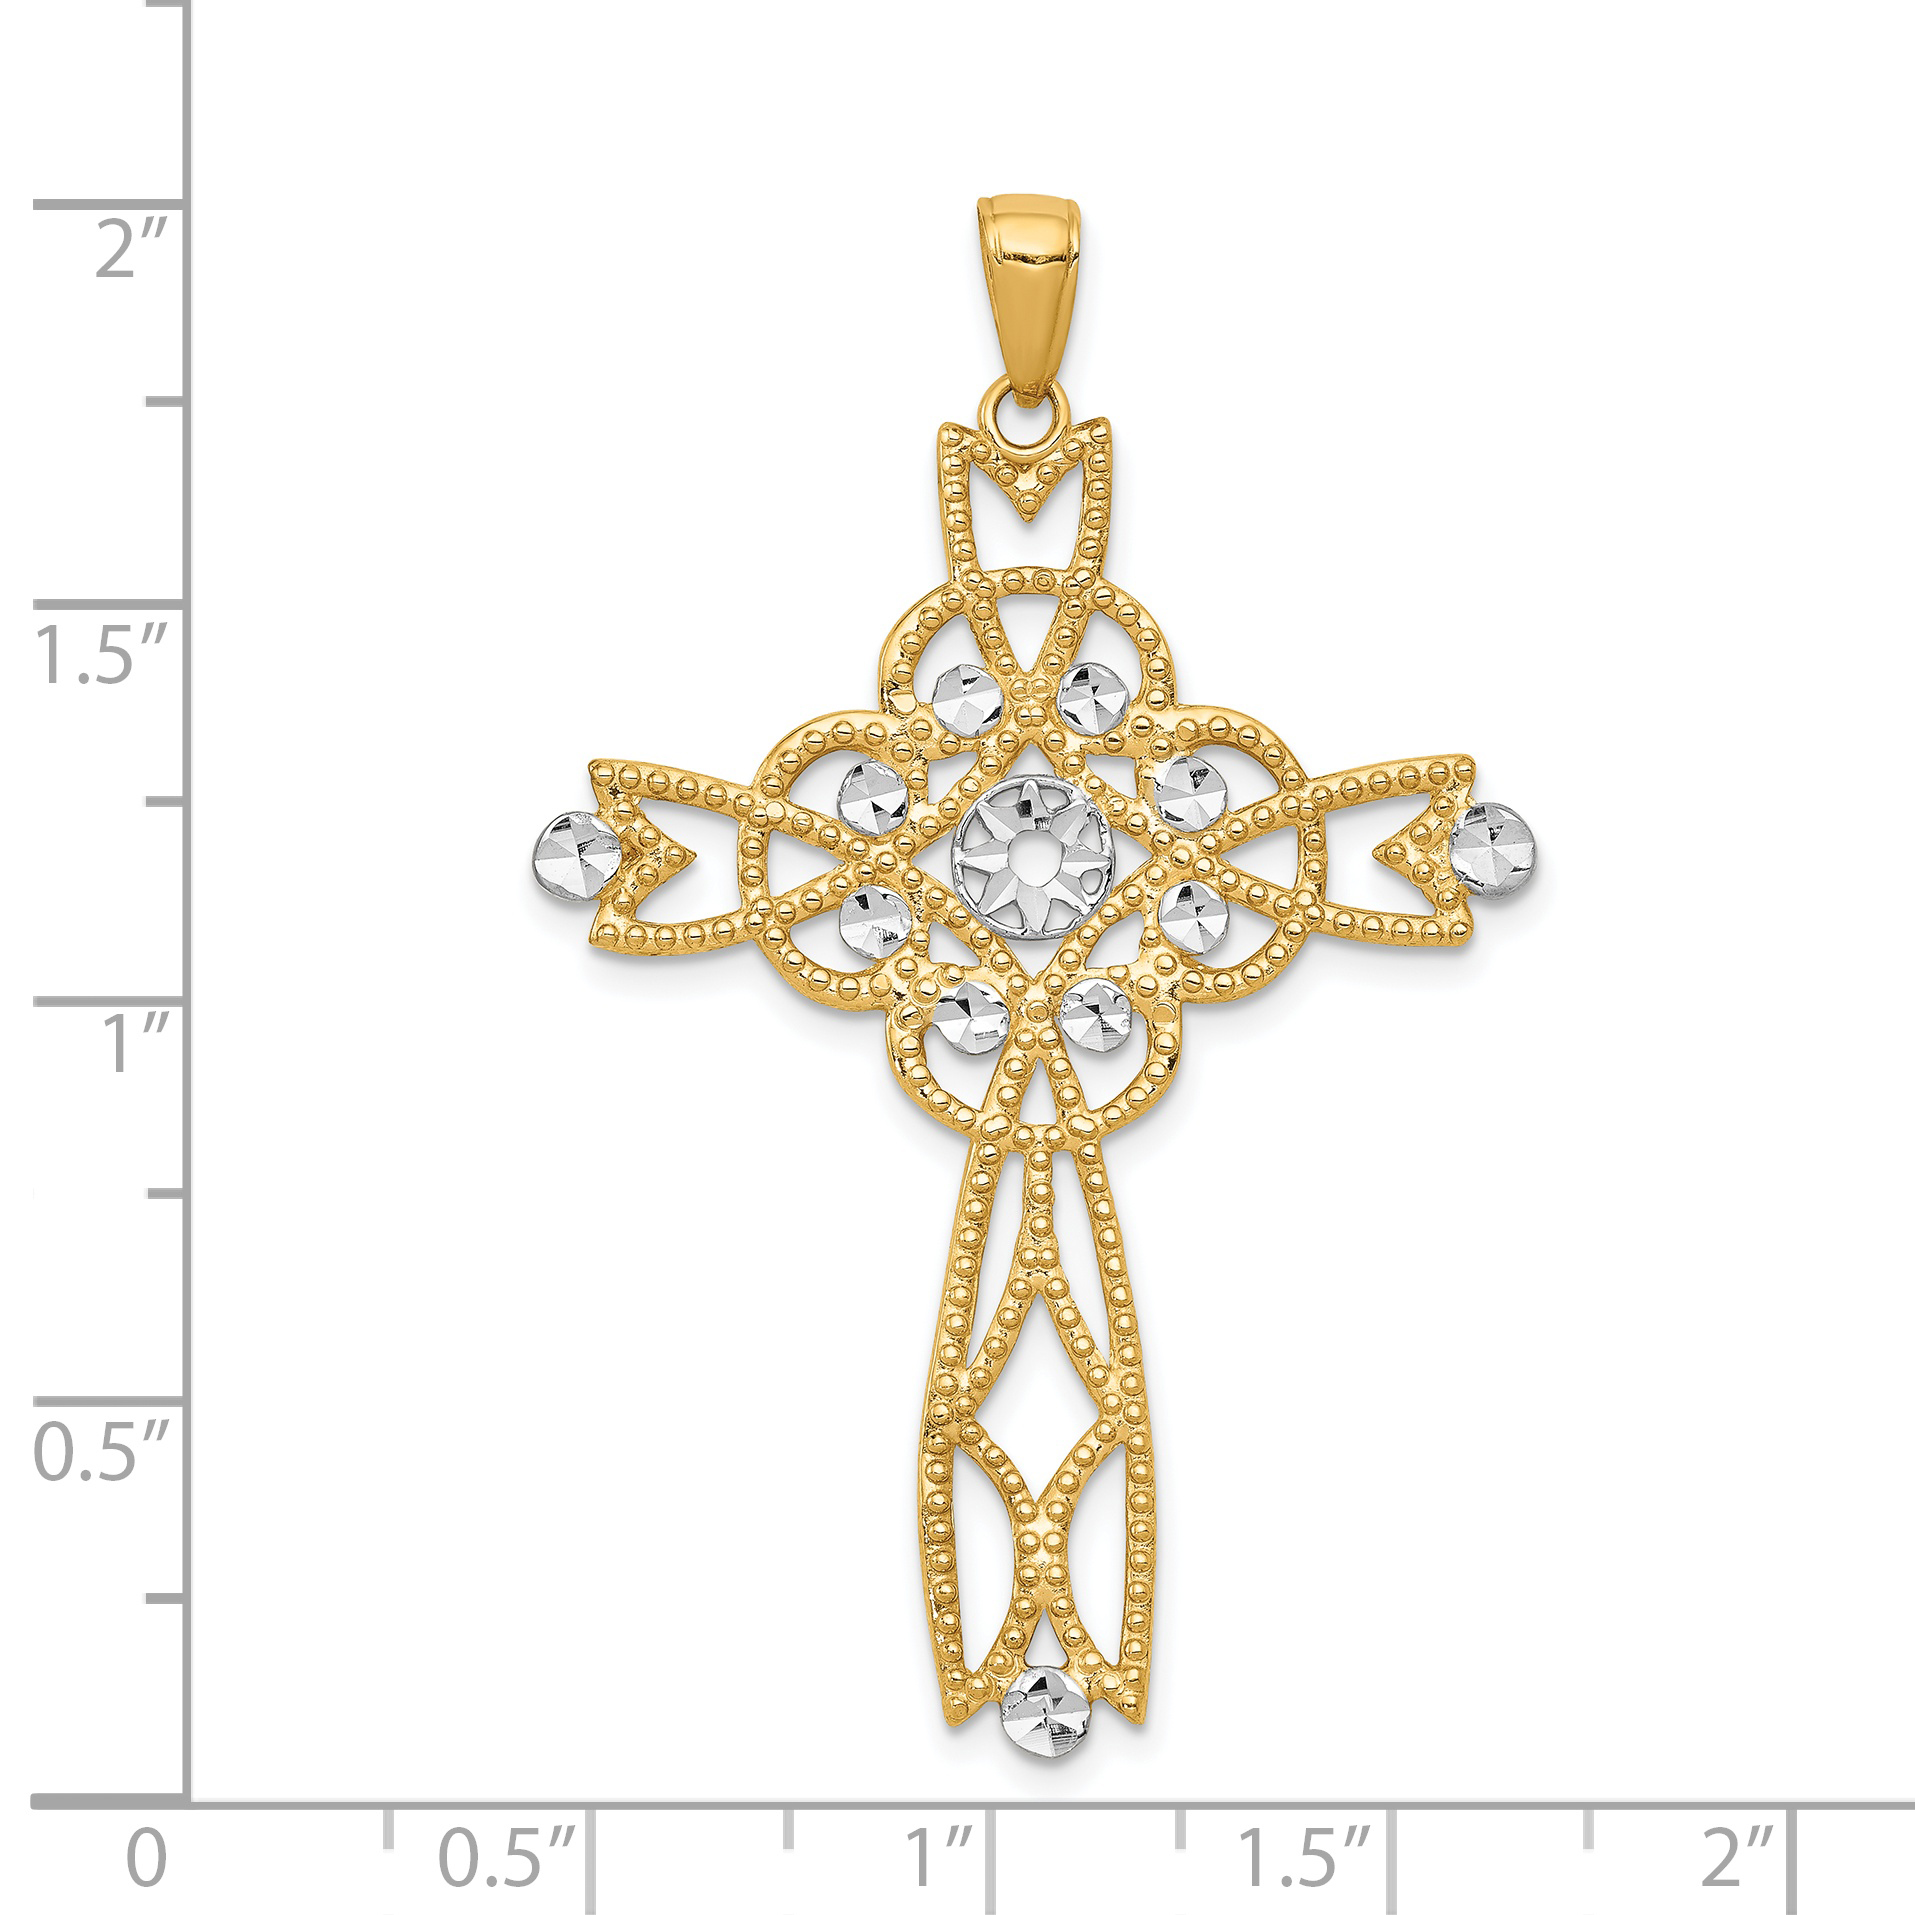 14k Yellow Gold Beaded Trim Infinity Cross Religious Pendant Charm Necklace Fancy Fine Jewelry Gifts For Women For Her - image 1 de 2